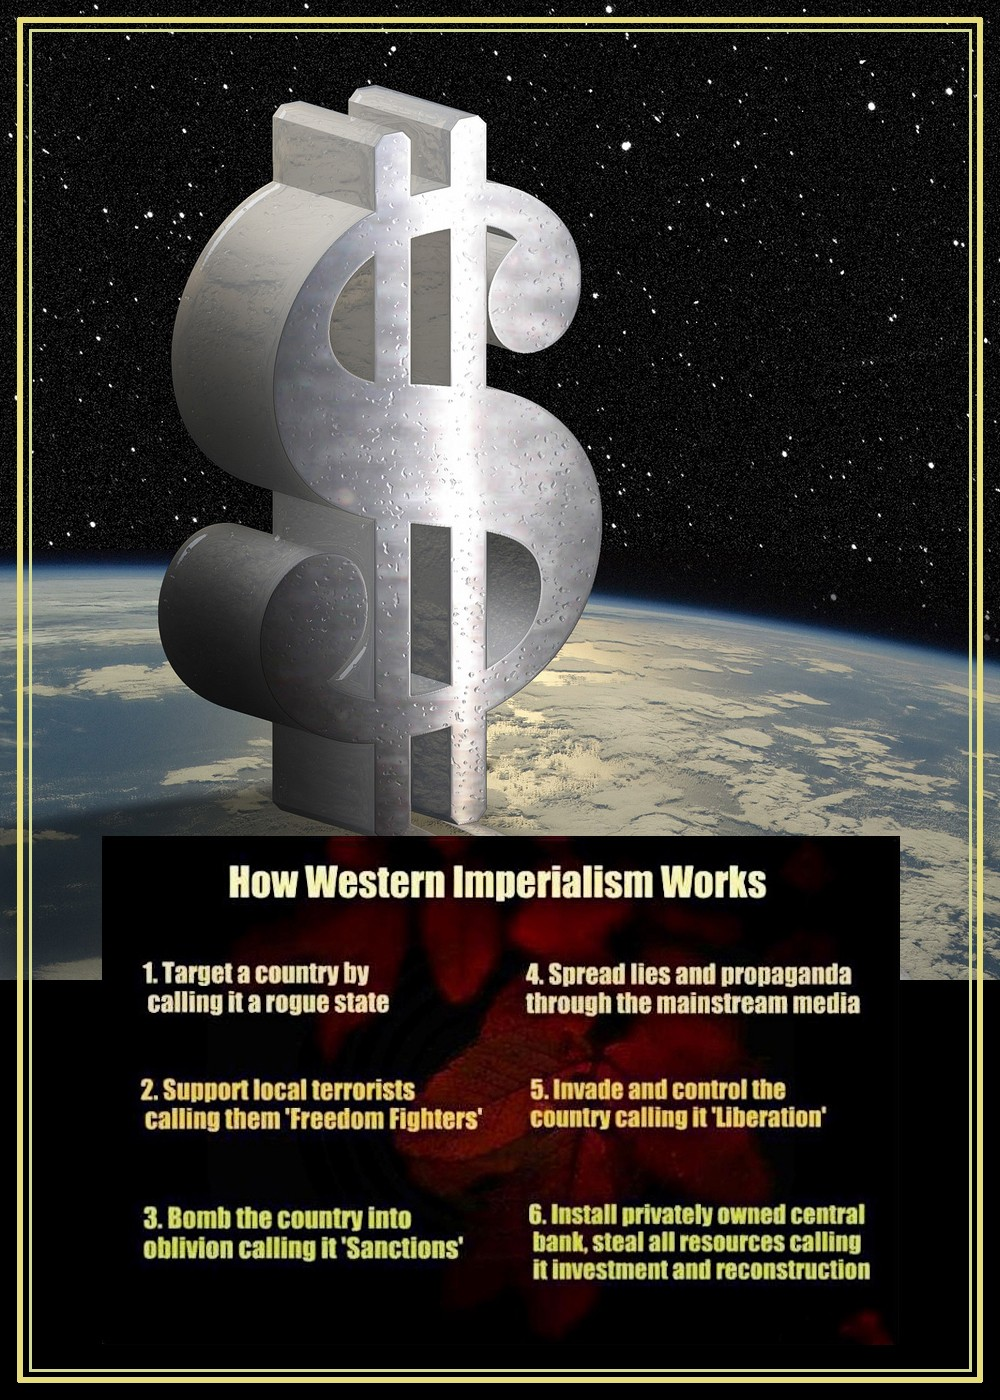 00 How Western Imperialism Works. 14.09.13